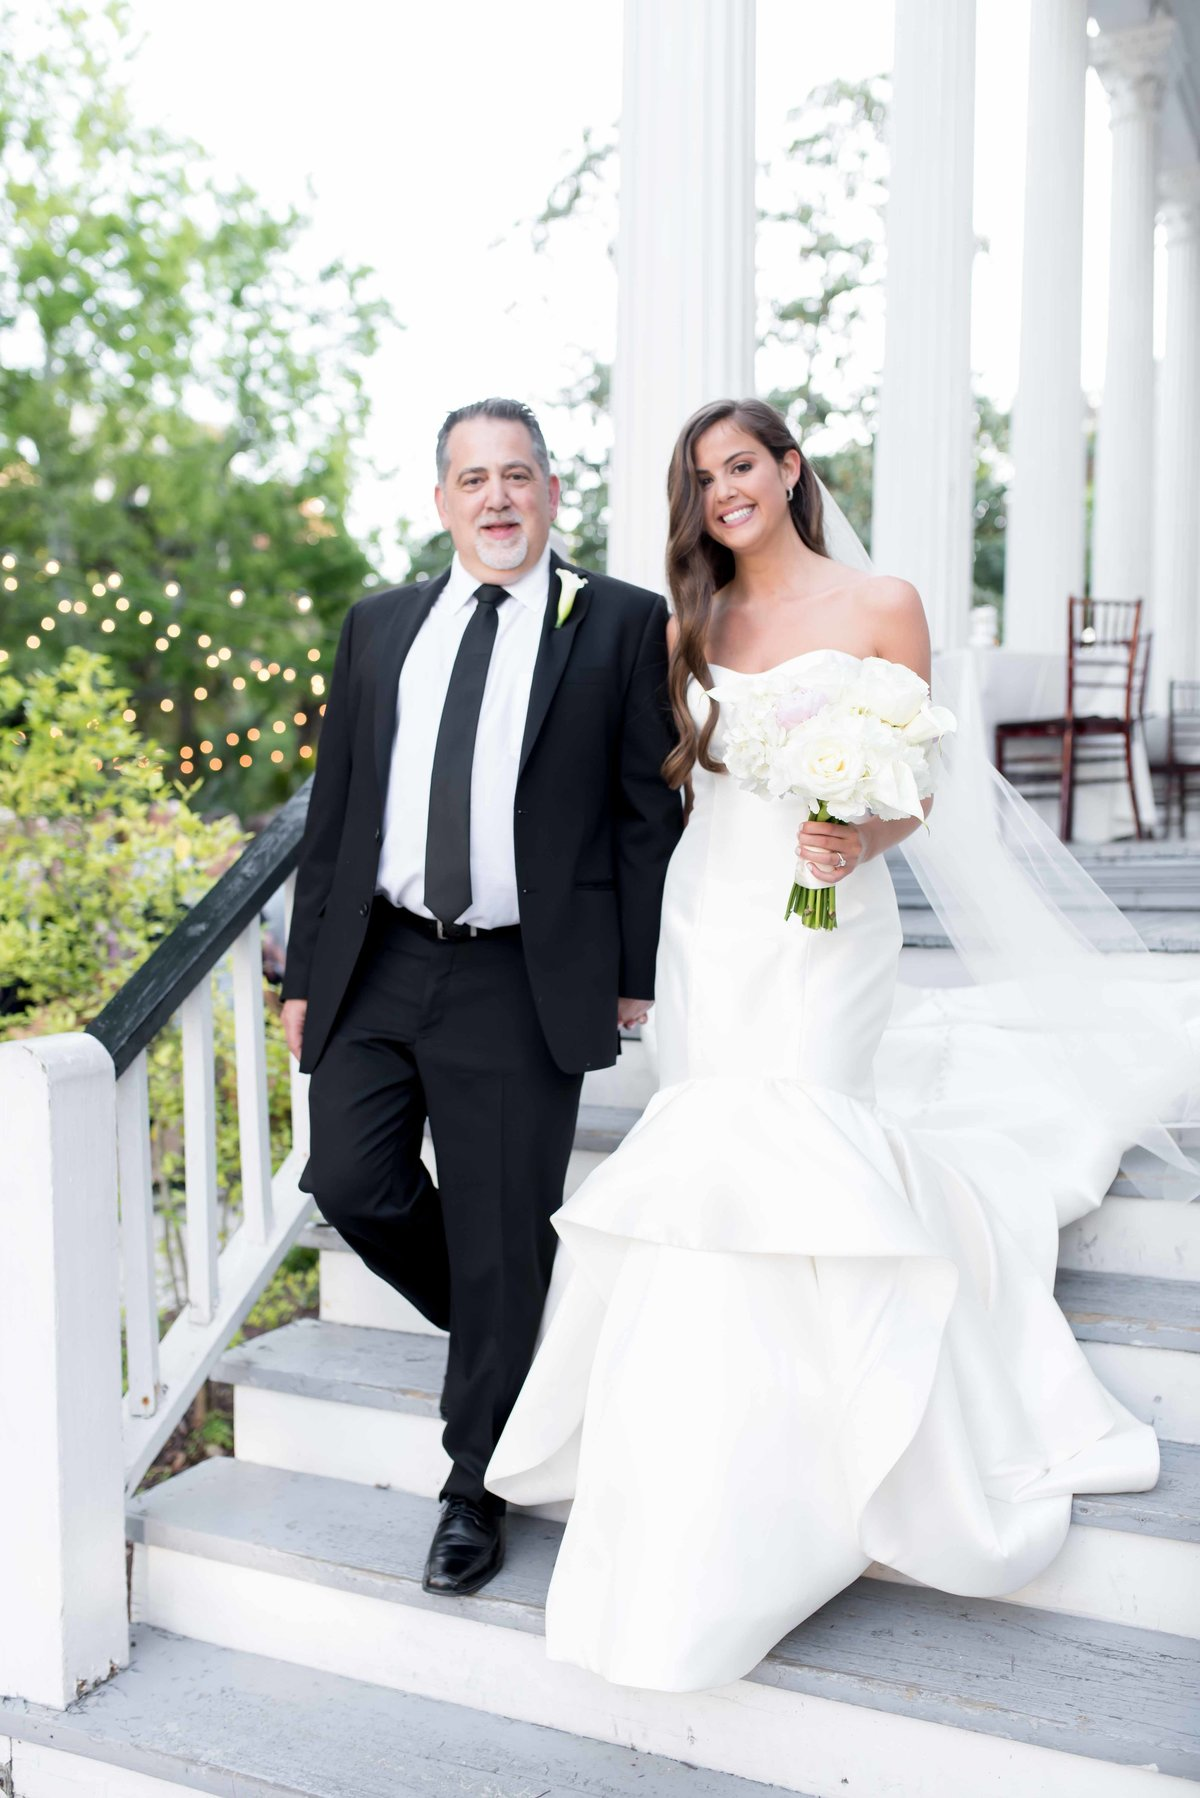 Last moment withFather and daughter during a wedding at Wickliffe House in Charleston, SC